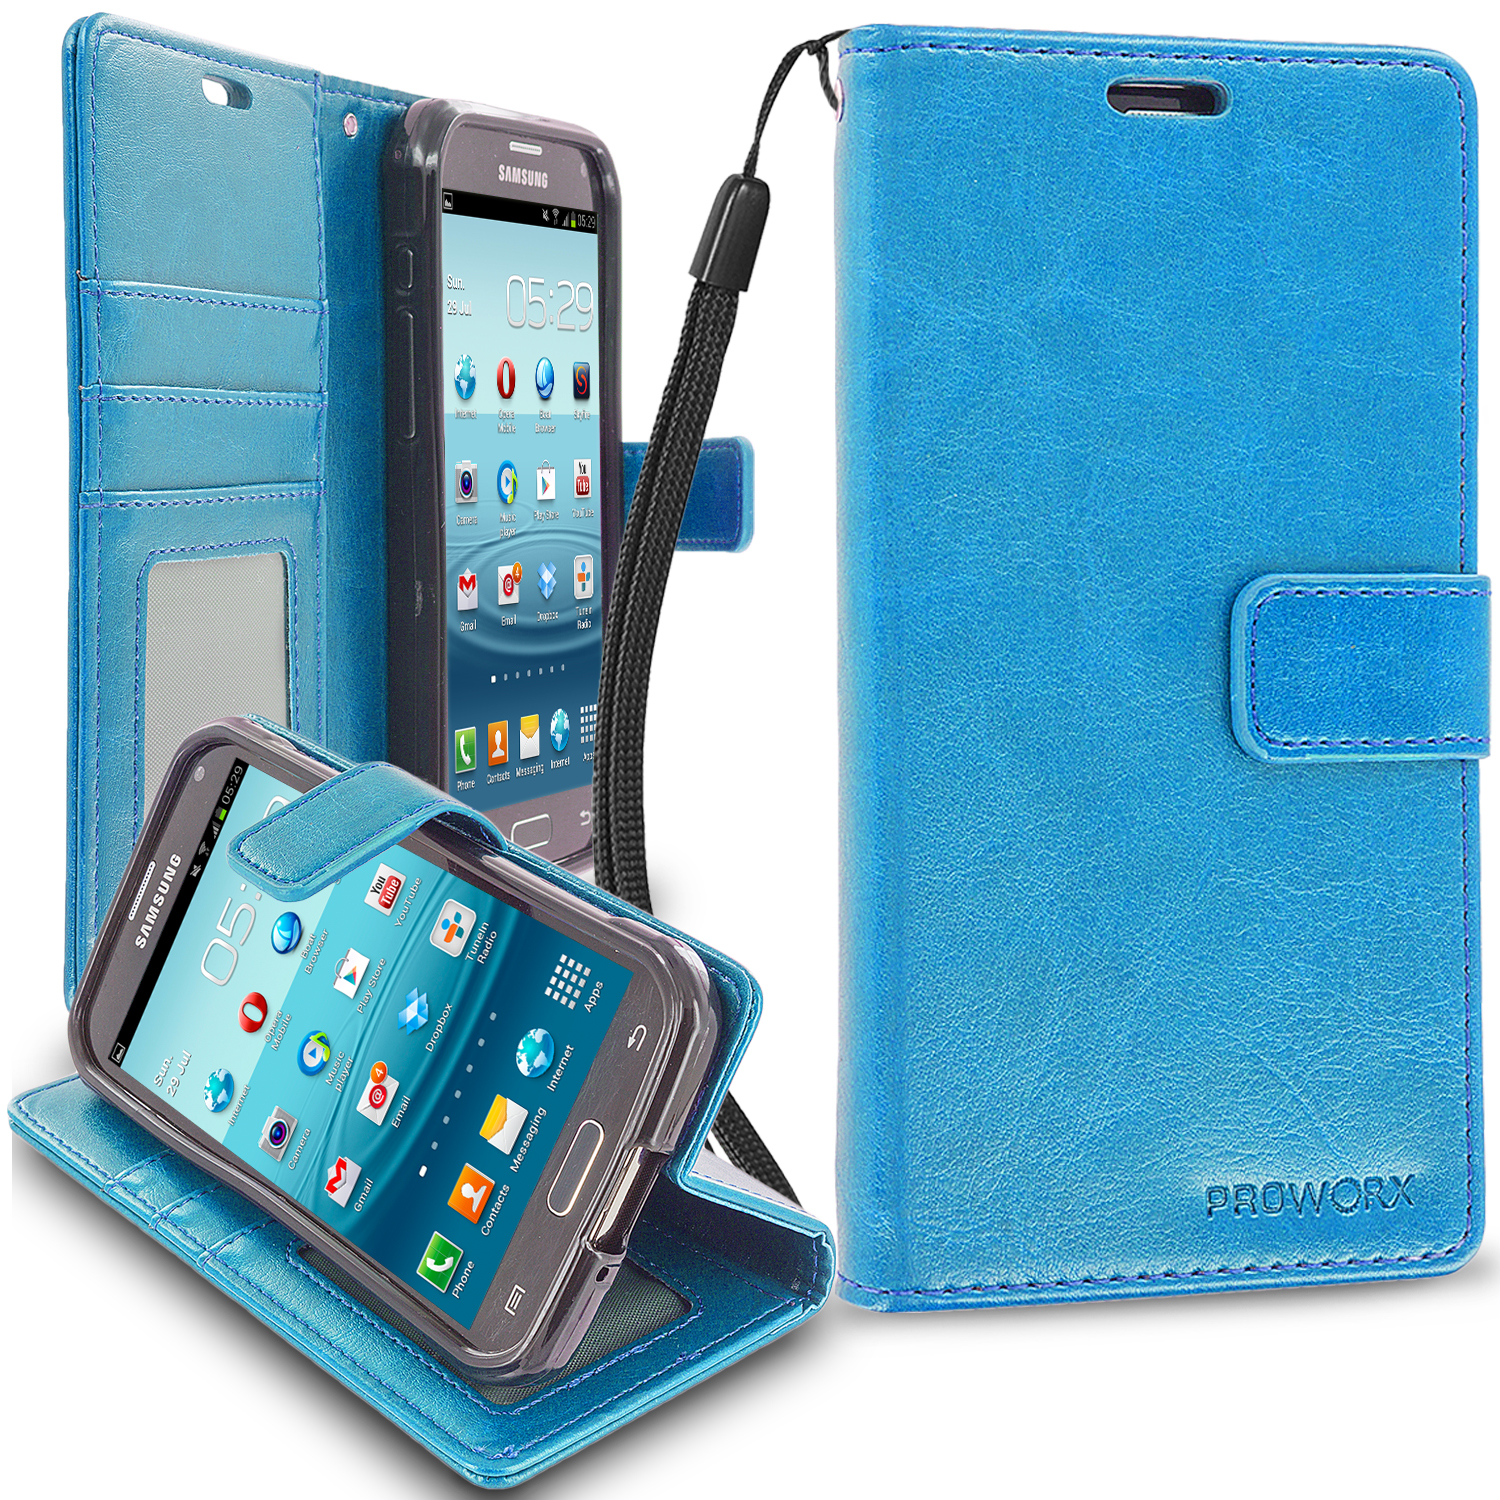 Samsung Galaxy S5 Active Baby Blue ProWorx Wallet Case Luxury PU Leather Case Cover With Card Slots & Stand